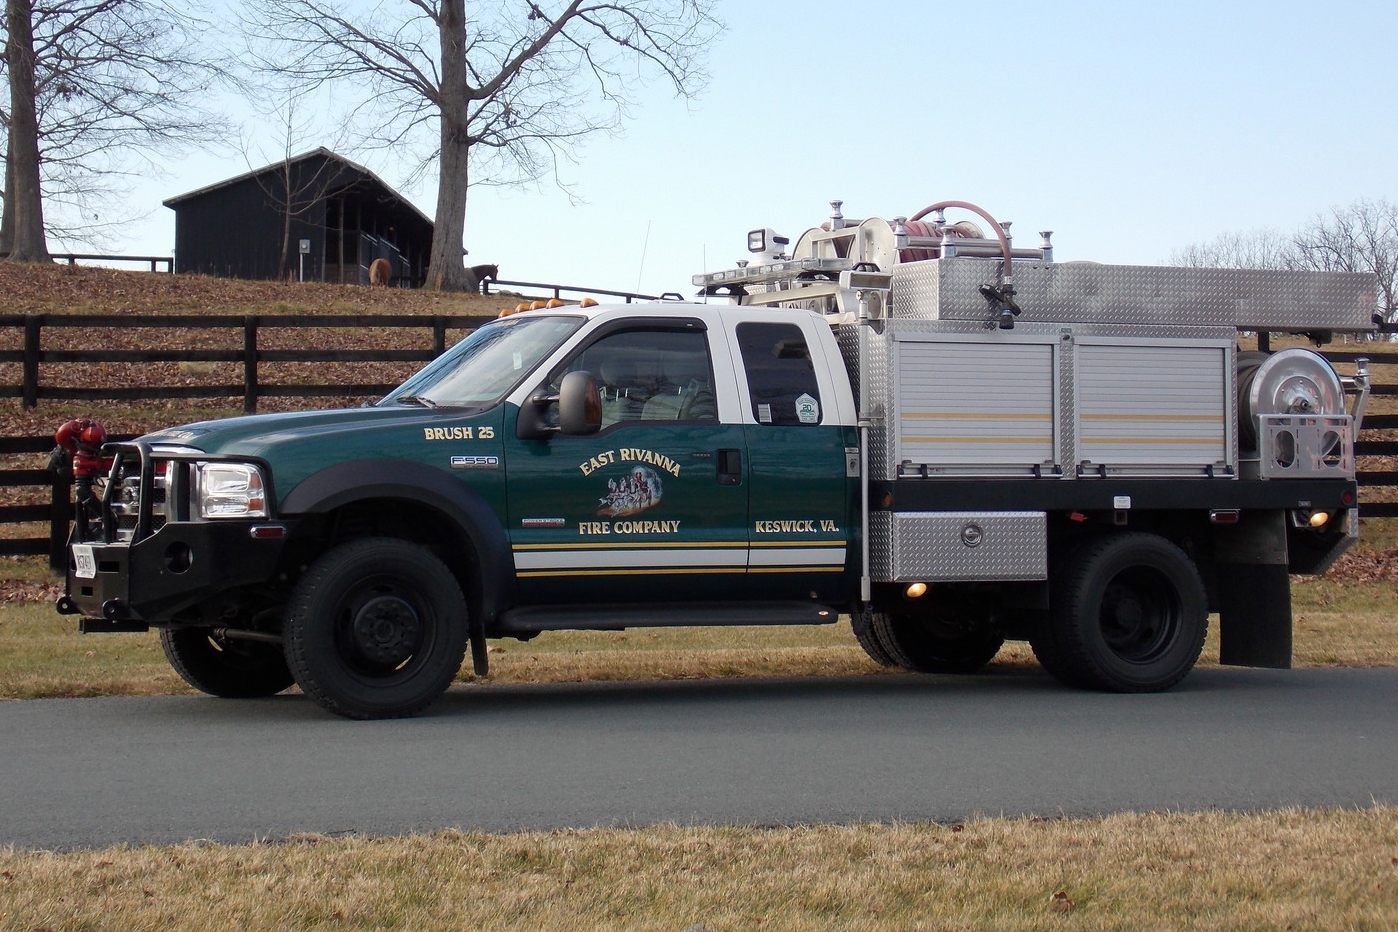 BRUSH 25   • 2007 FORD F-550, BRUSH TRUCK • MAXIMUM CREW: 5 • PUMP: 500 GPM • WATER: 300 GALLON TANK • FOAM: 30 GALLON TANK • BRUSH 25 IS UTILIZED FOR BRUSH AND WILDFIRES AS WELL AS RURAL WATER SUPPLY AND INCLIMATE WEATHER RESPONSE.